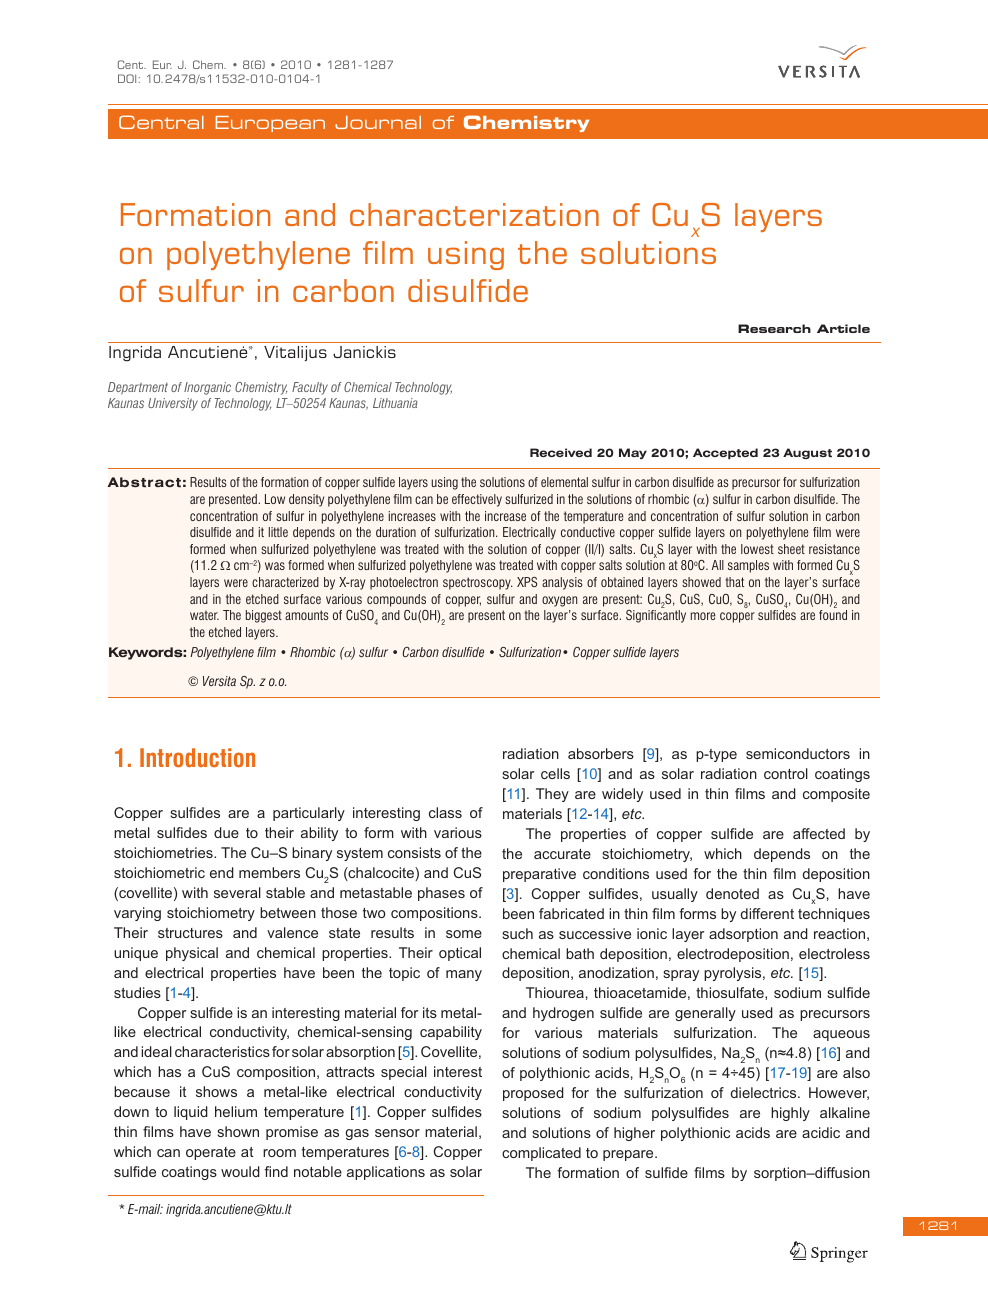 Formation and characterization of CuxS layers on